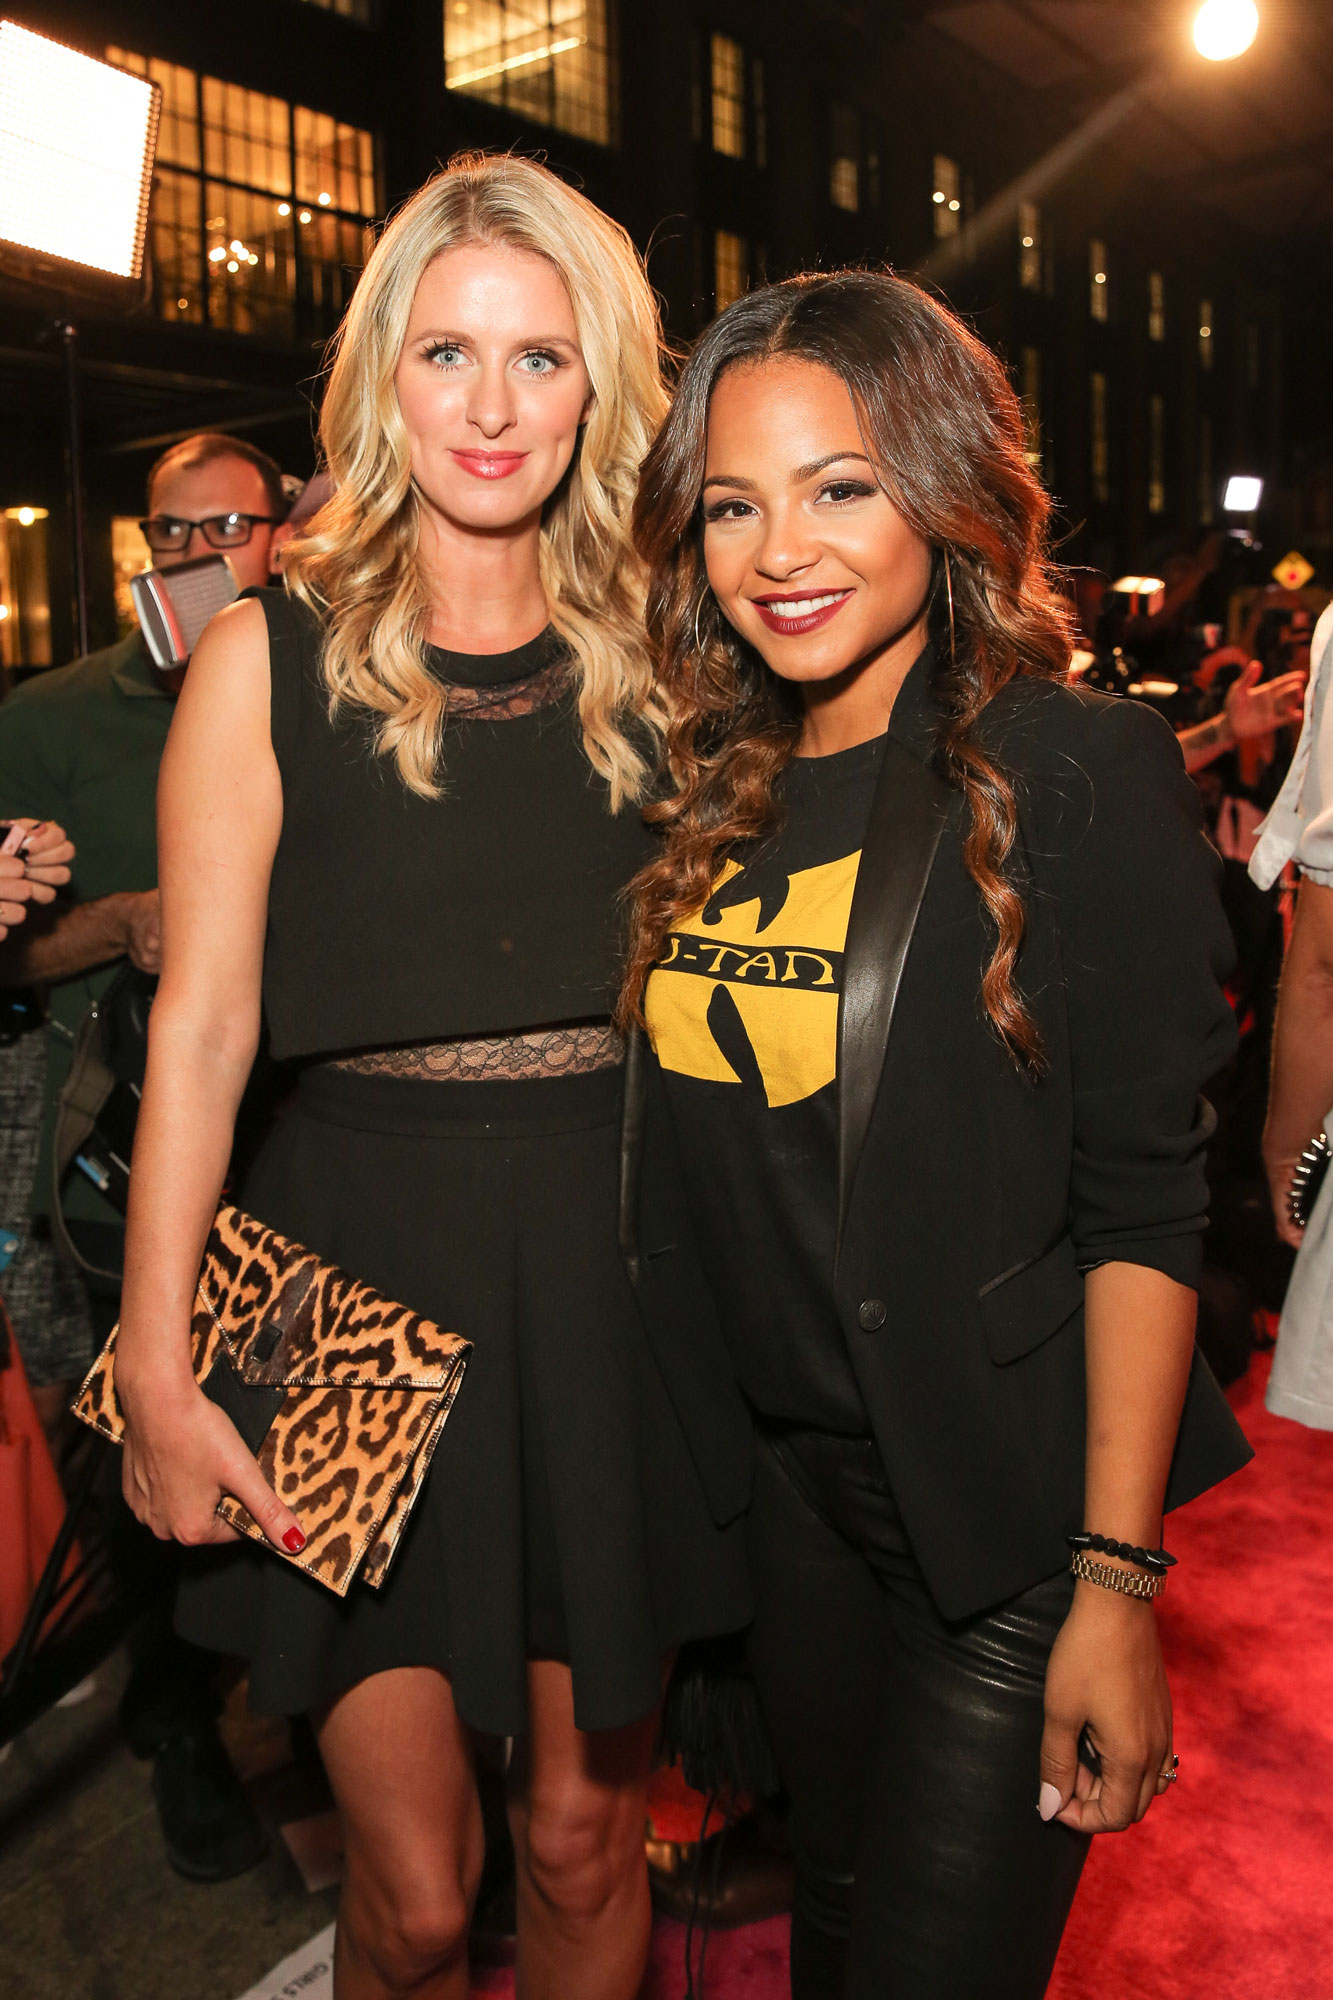 Nicky-Hilton-and-Christina-Milian